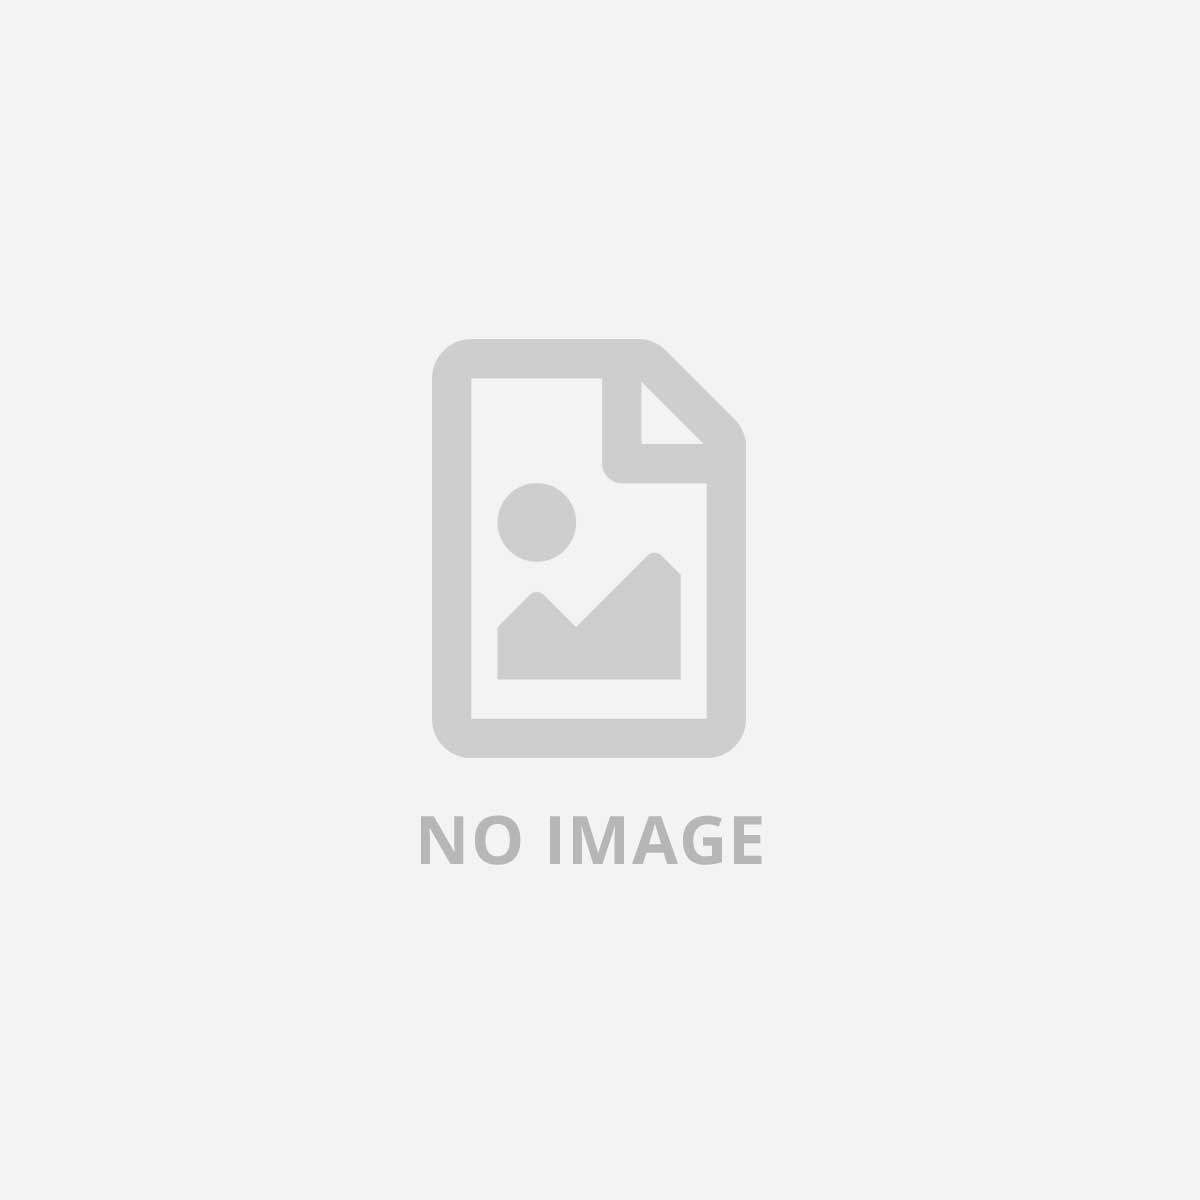 BLACK AND DECKER BLACKDECKER SEGHETTO ALTERNATIVO